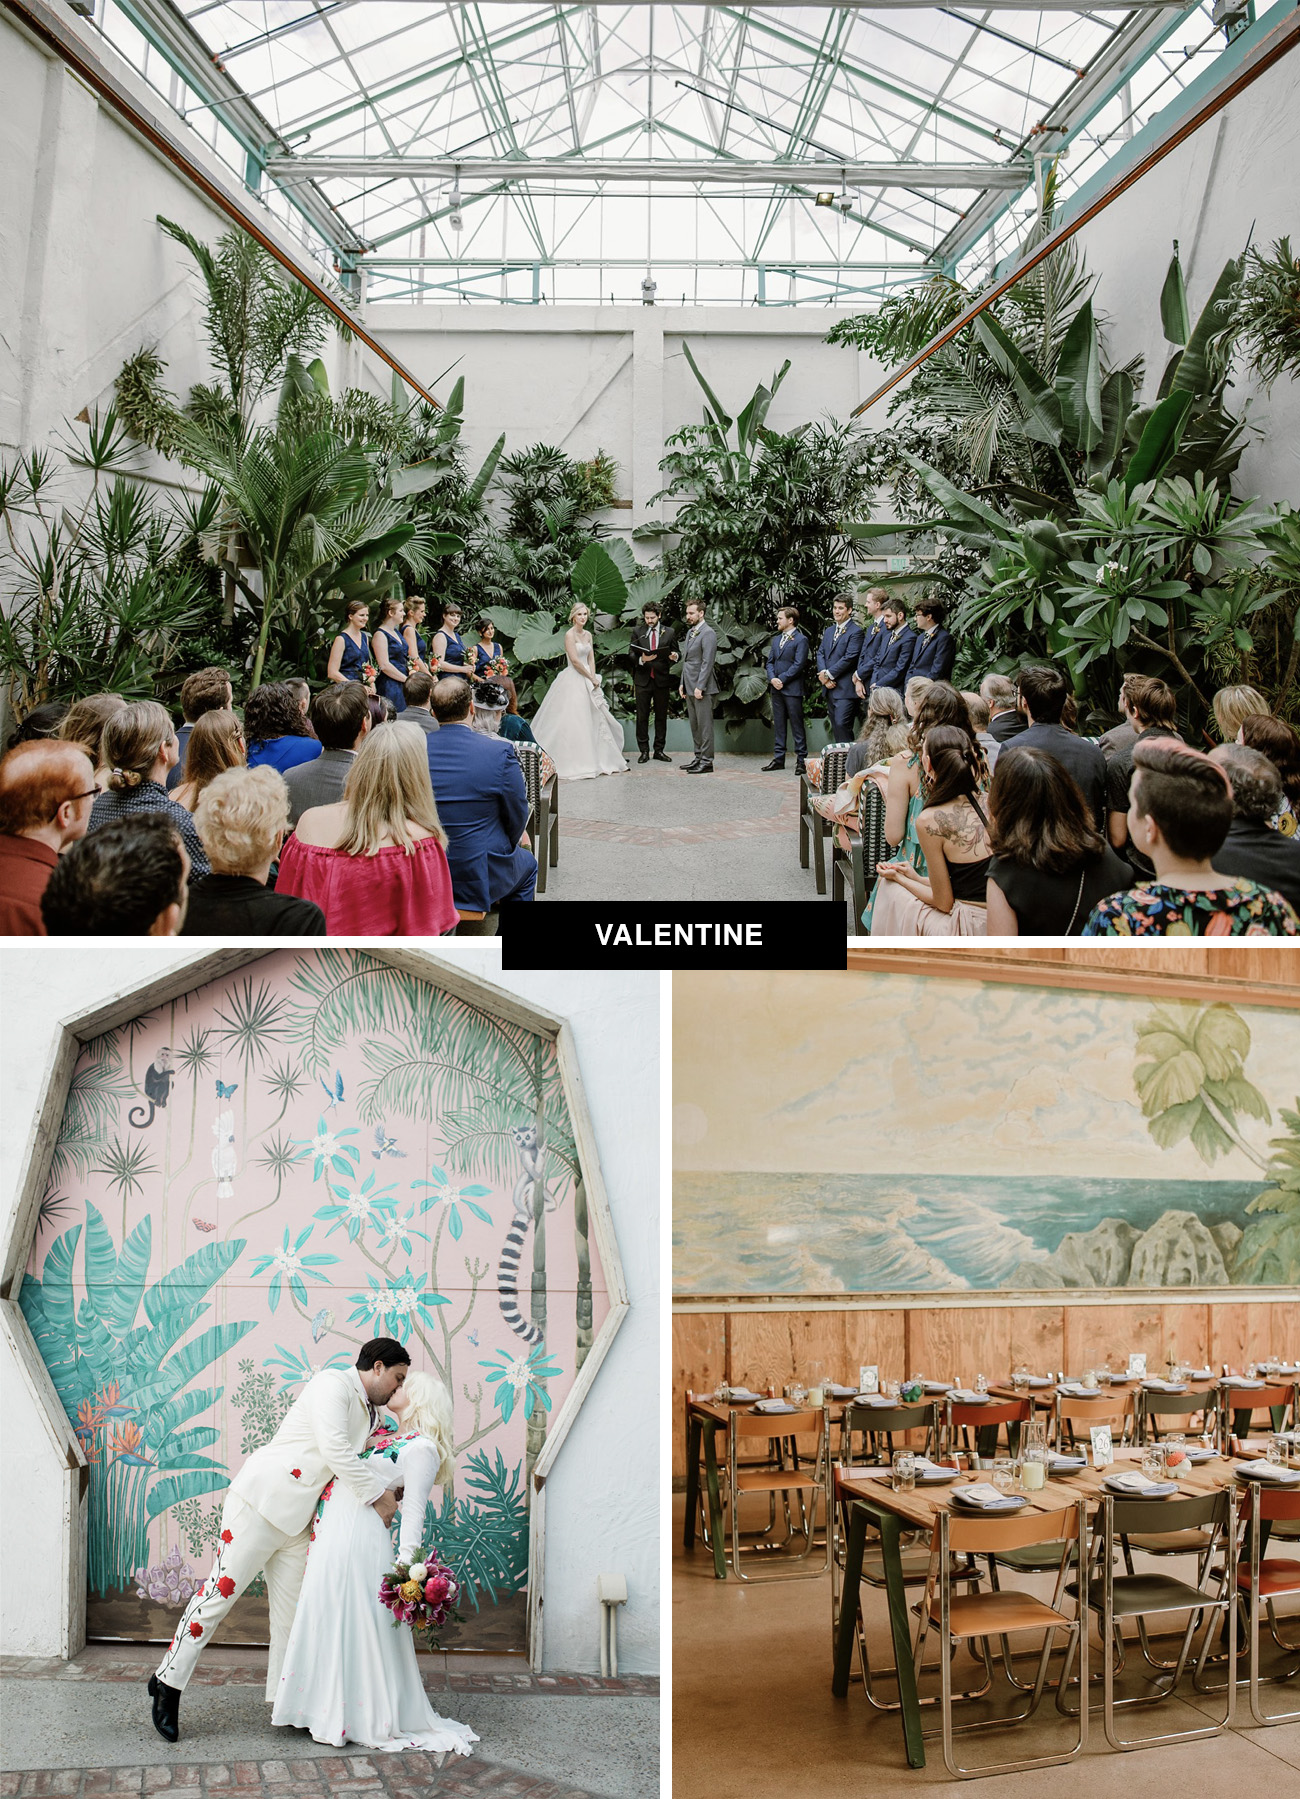 Valentine wedding venue in downtown Los Angeles DTLA - an historic LA place to get married